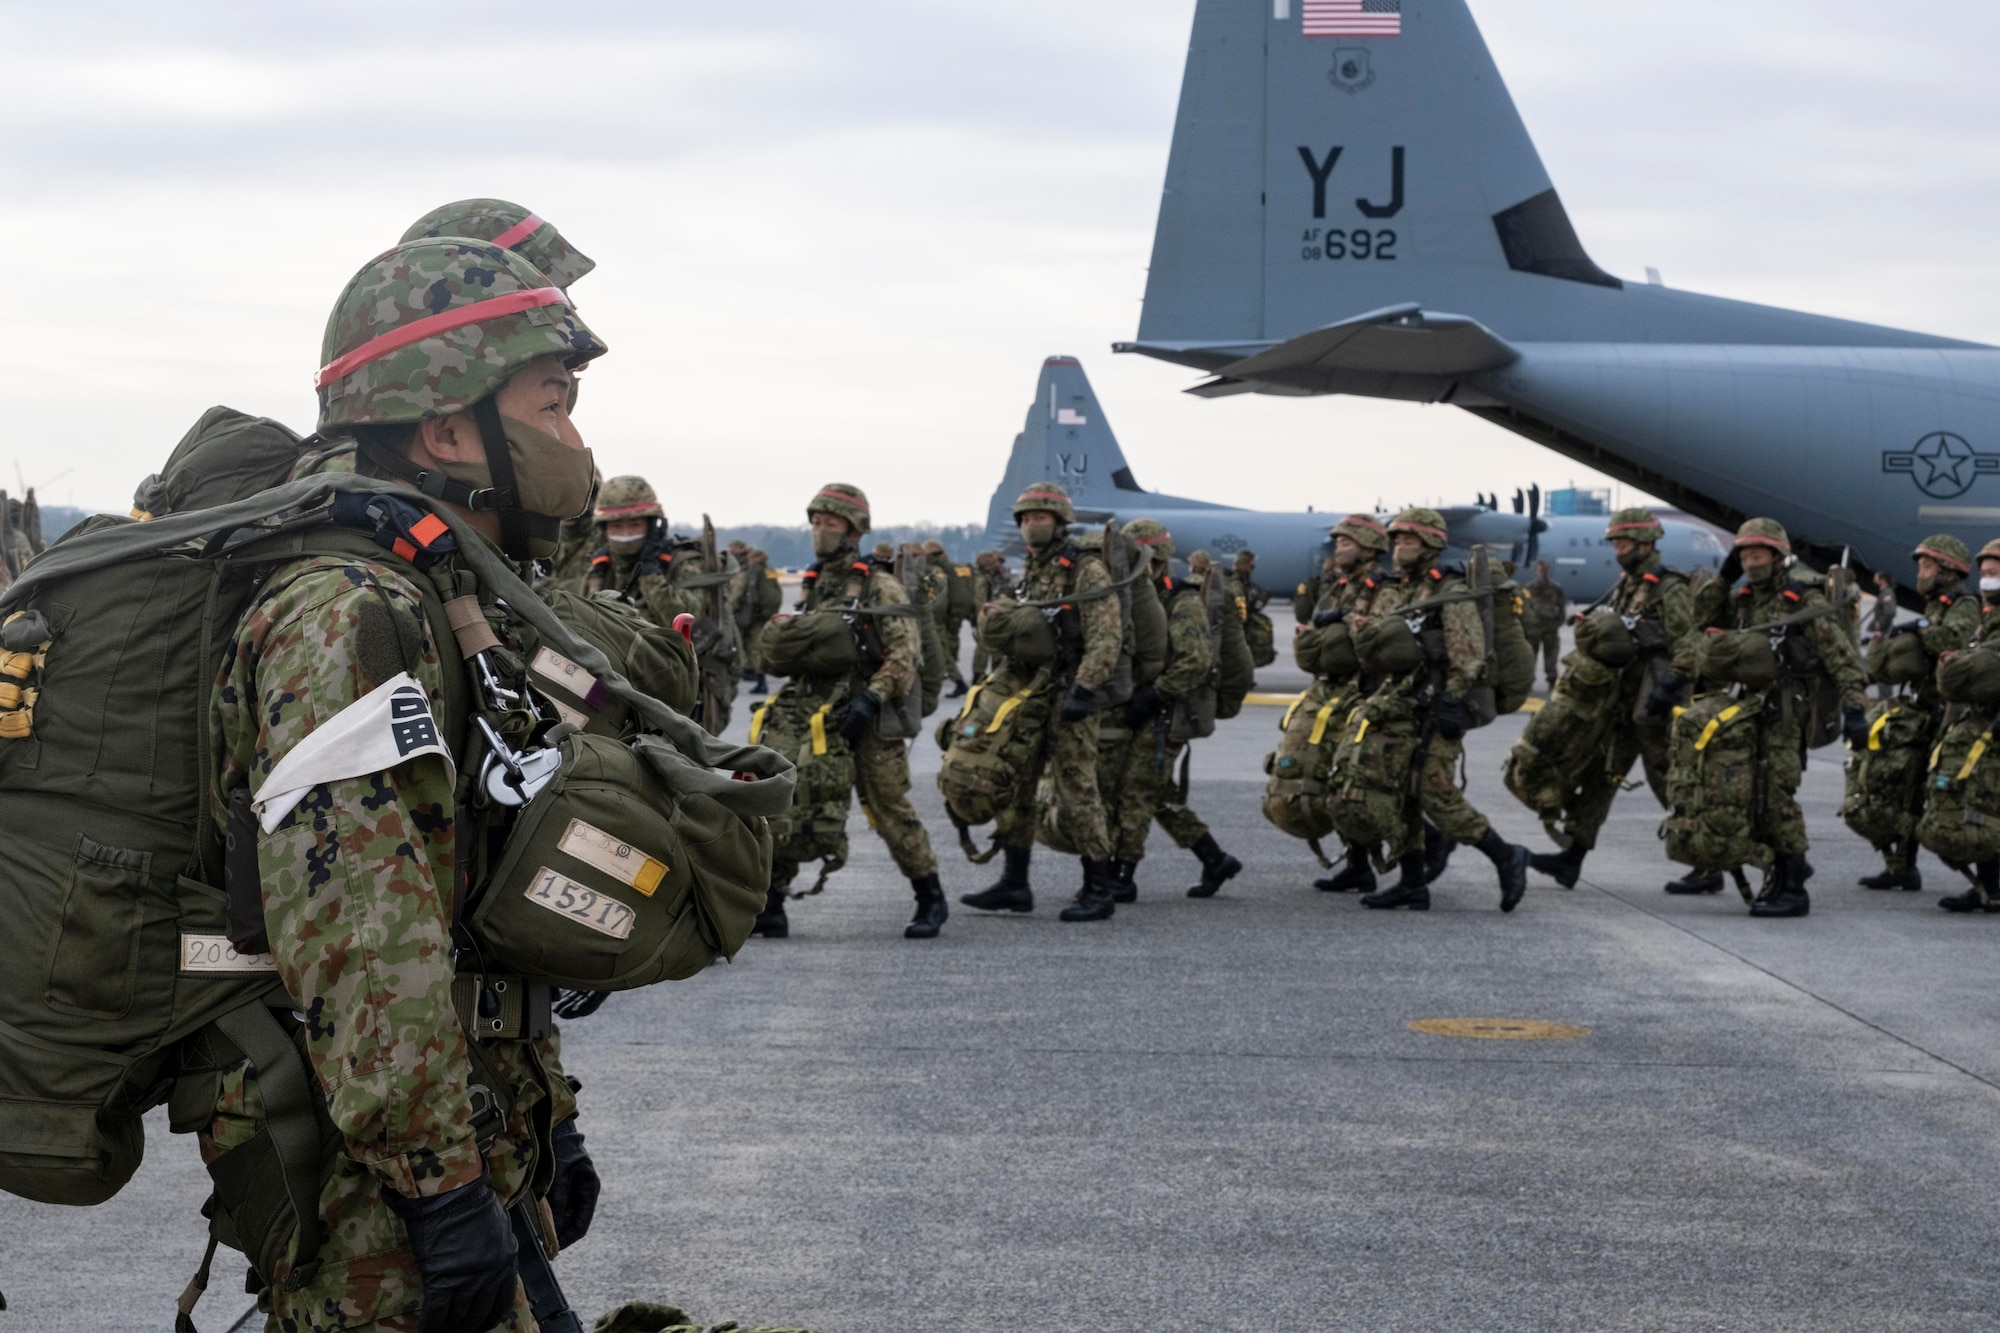 Japan Ground Self Defense Force paratroopers line up to load onto a C-130J Super Hercules, assigned to the 374th Airlift Wing, during exercise Airborne 21 at Yokota Air Base, Japan, March 9, 2021.